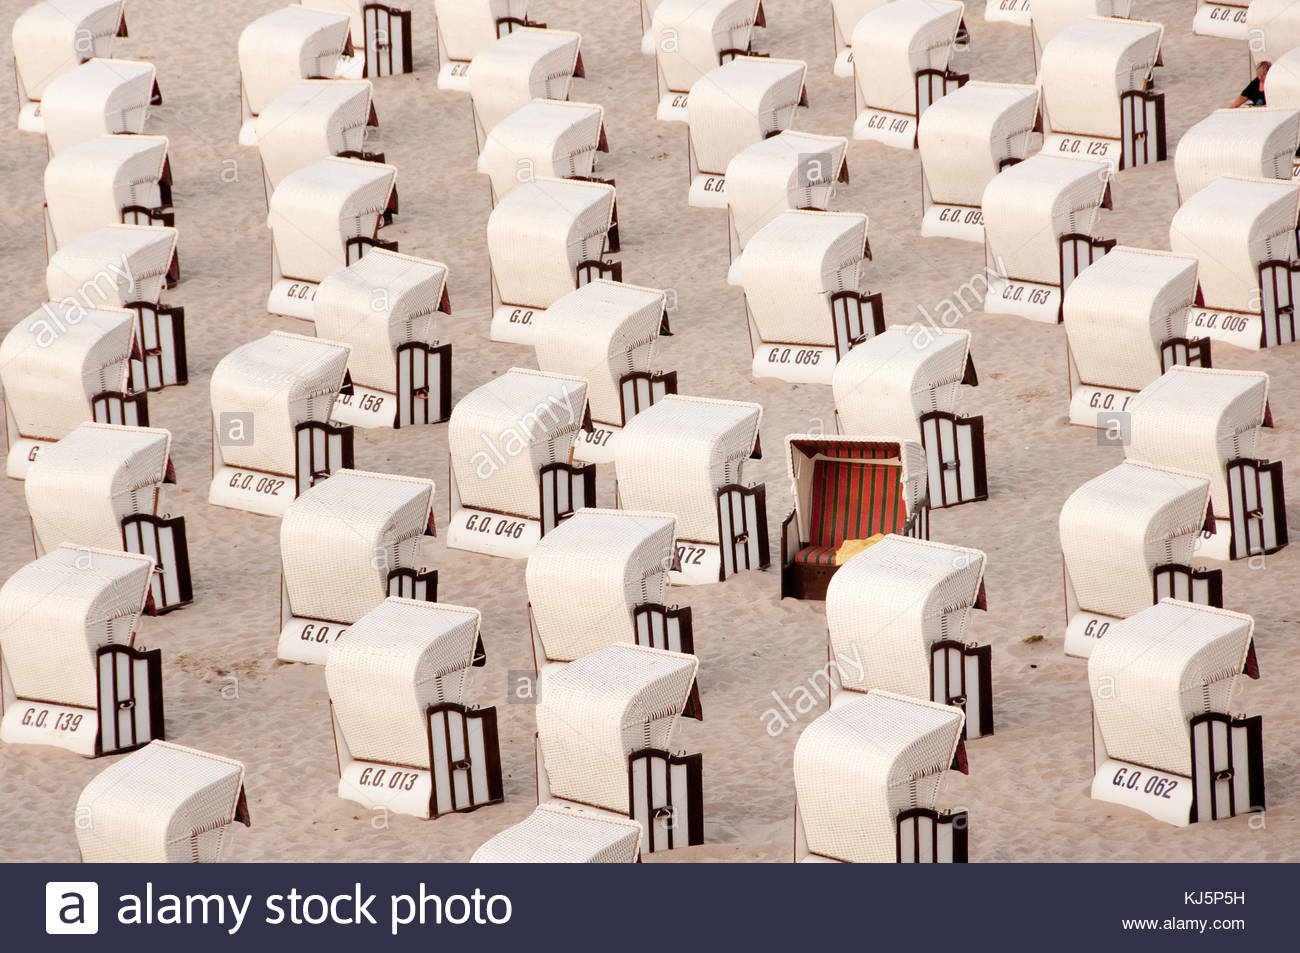 Rows of beach chairs with one turned the other way round - Stock Image